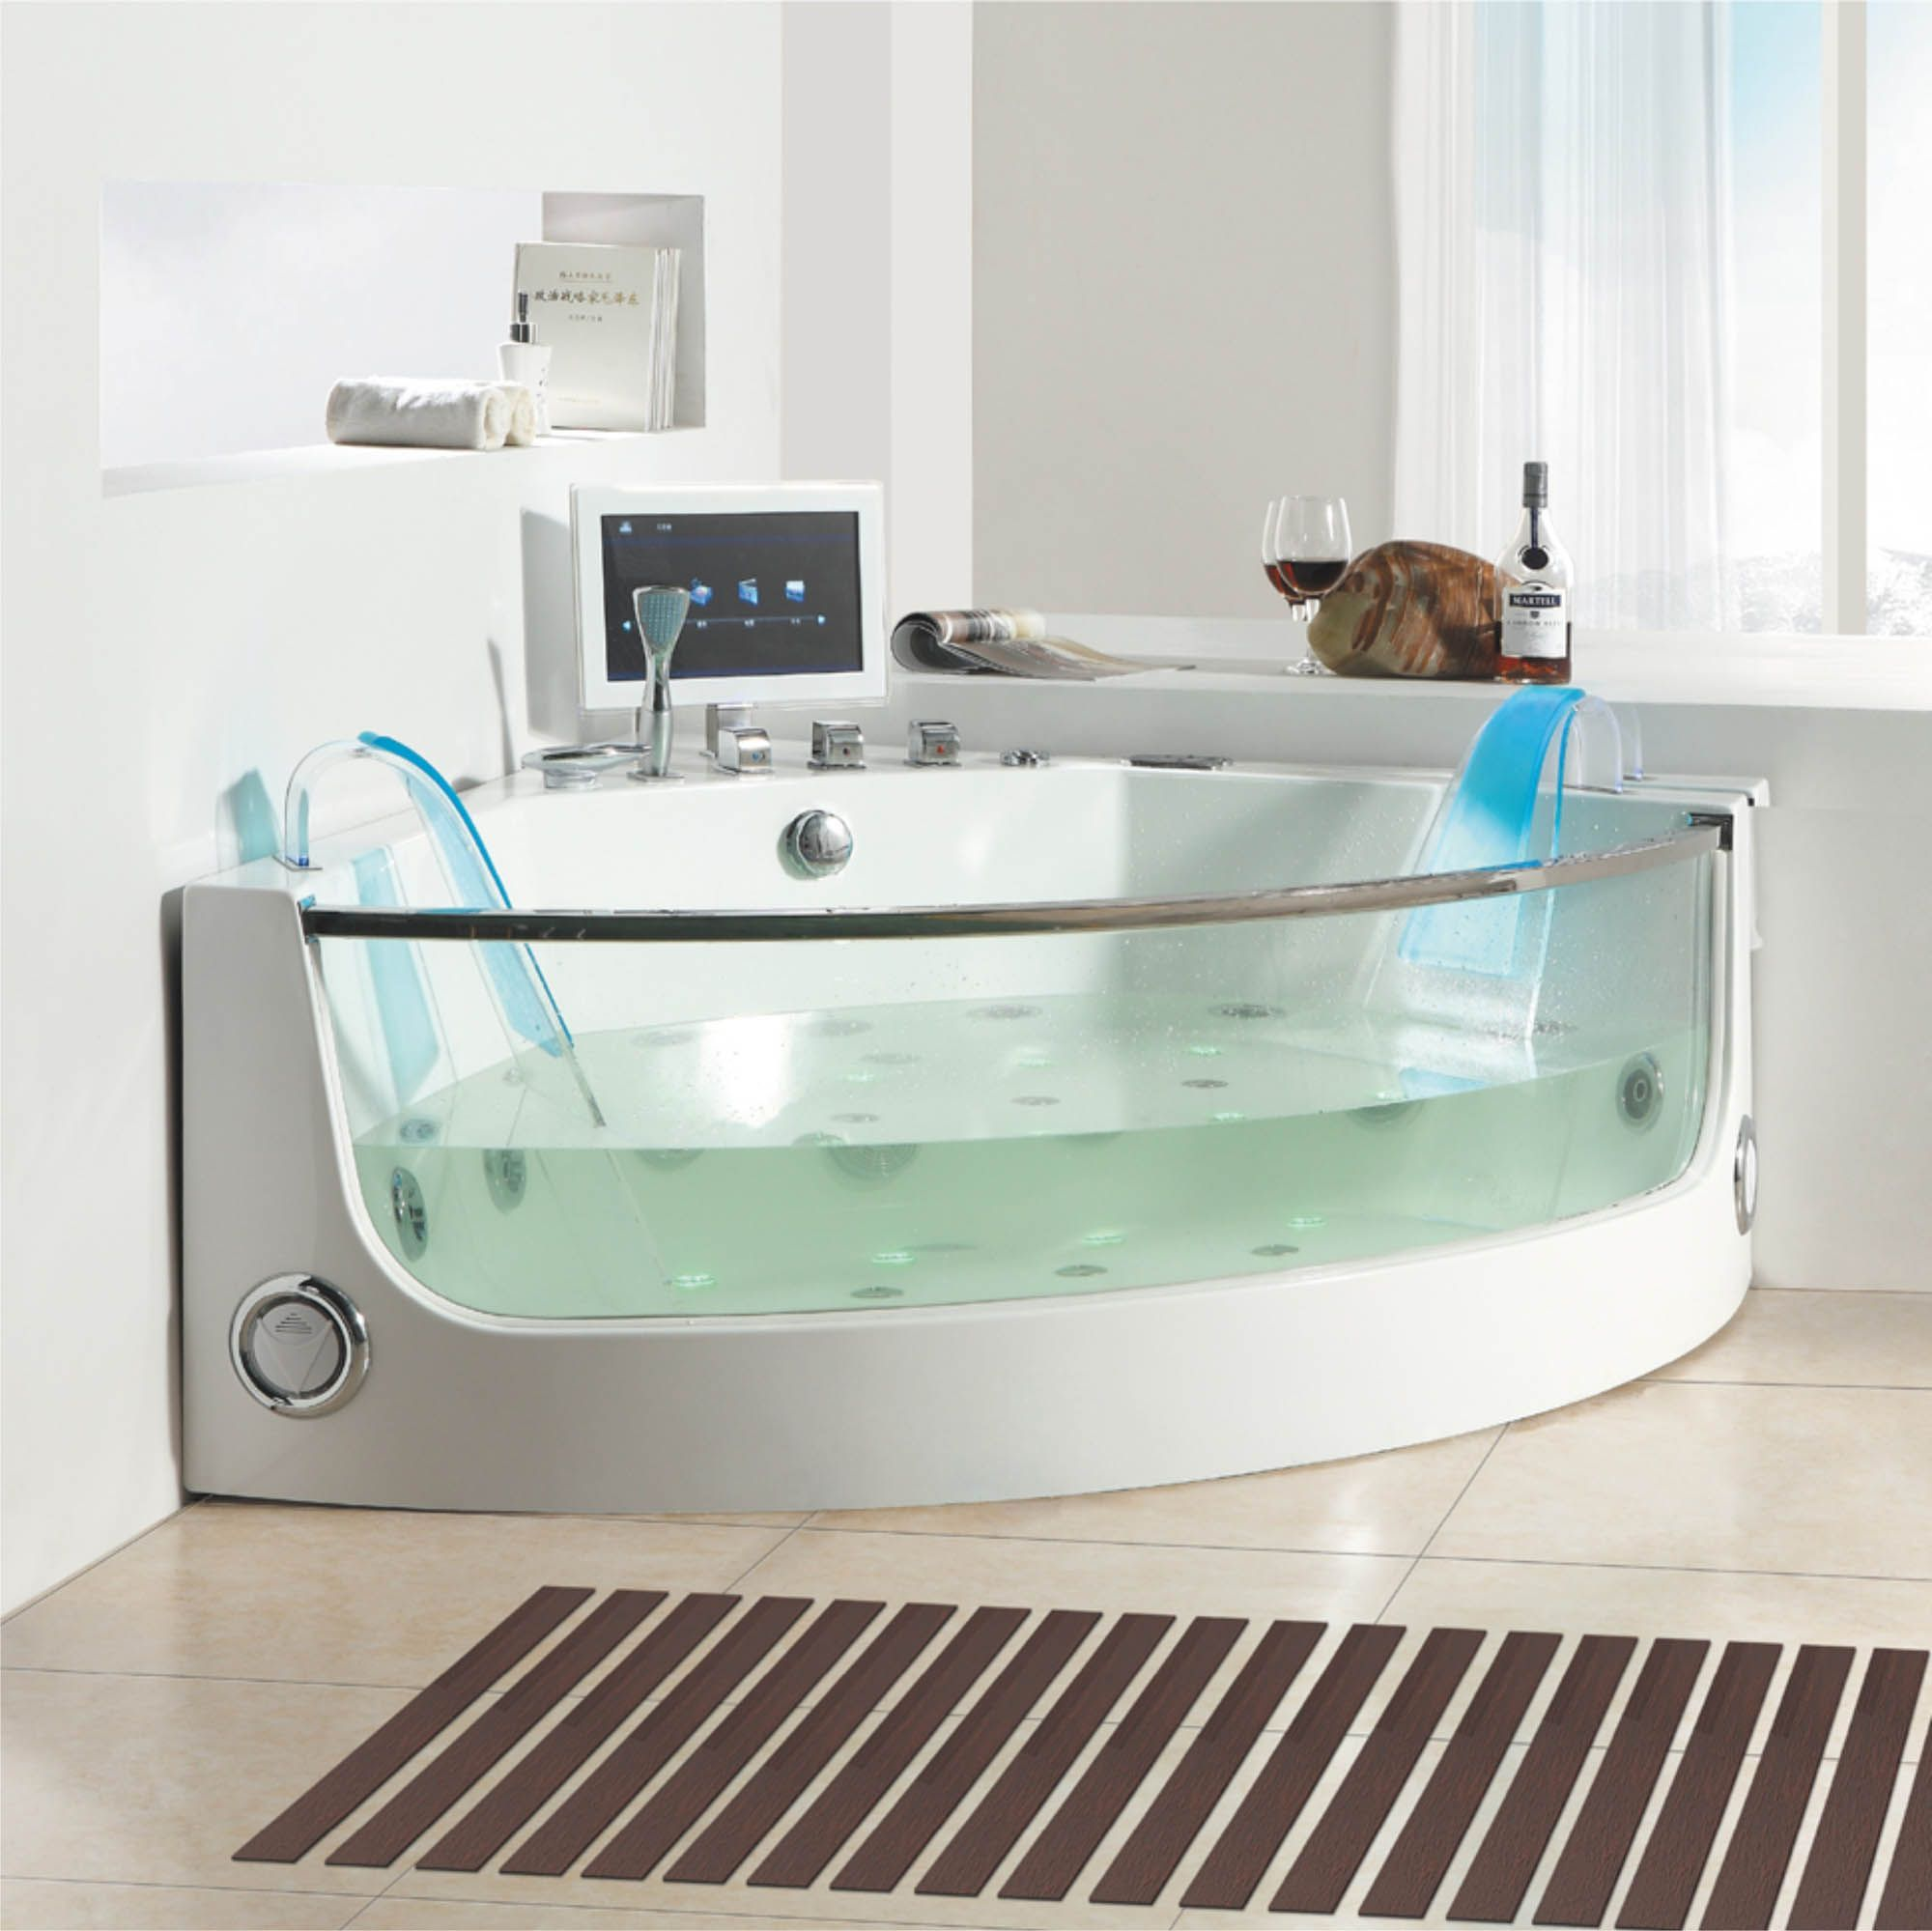 My fave tub for two so far! #cornerwhirlpooltubsfortwo | Whirlpool ...